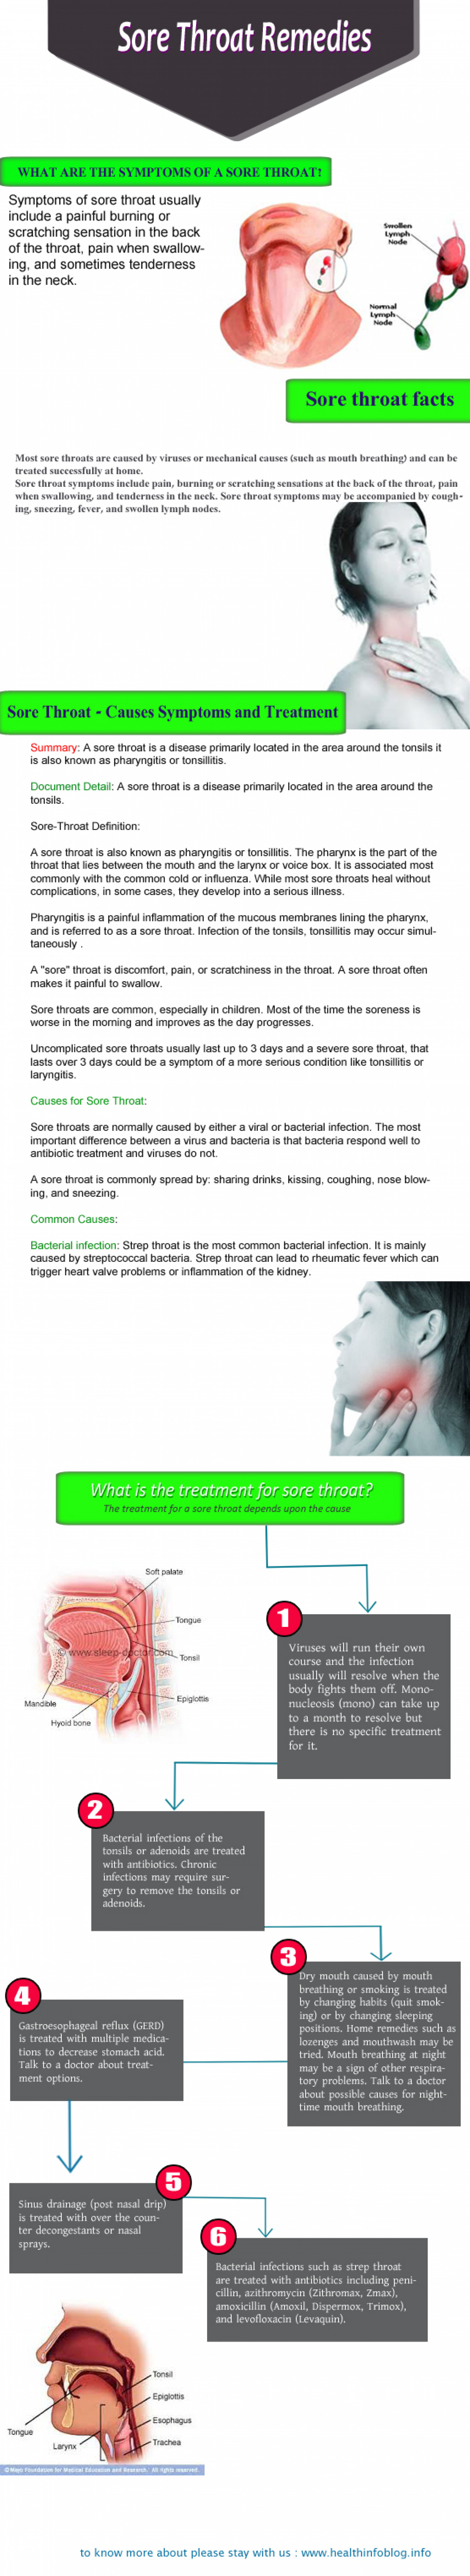 How To Cure Sore Throat By Home Remedies  Infographic